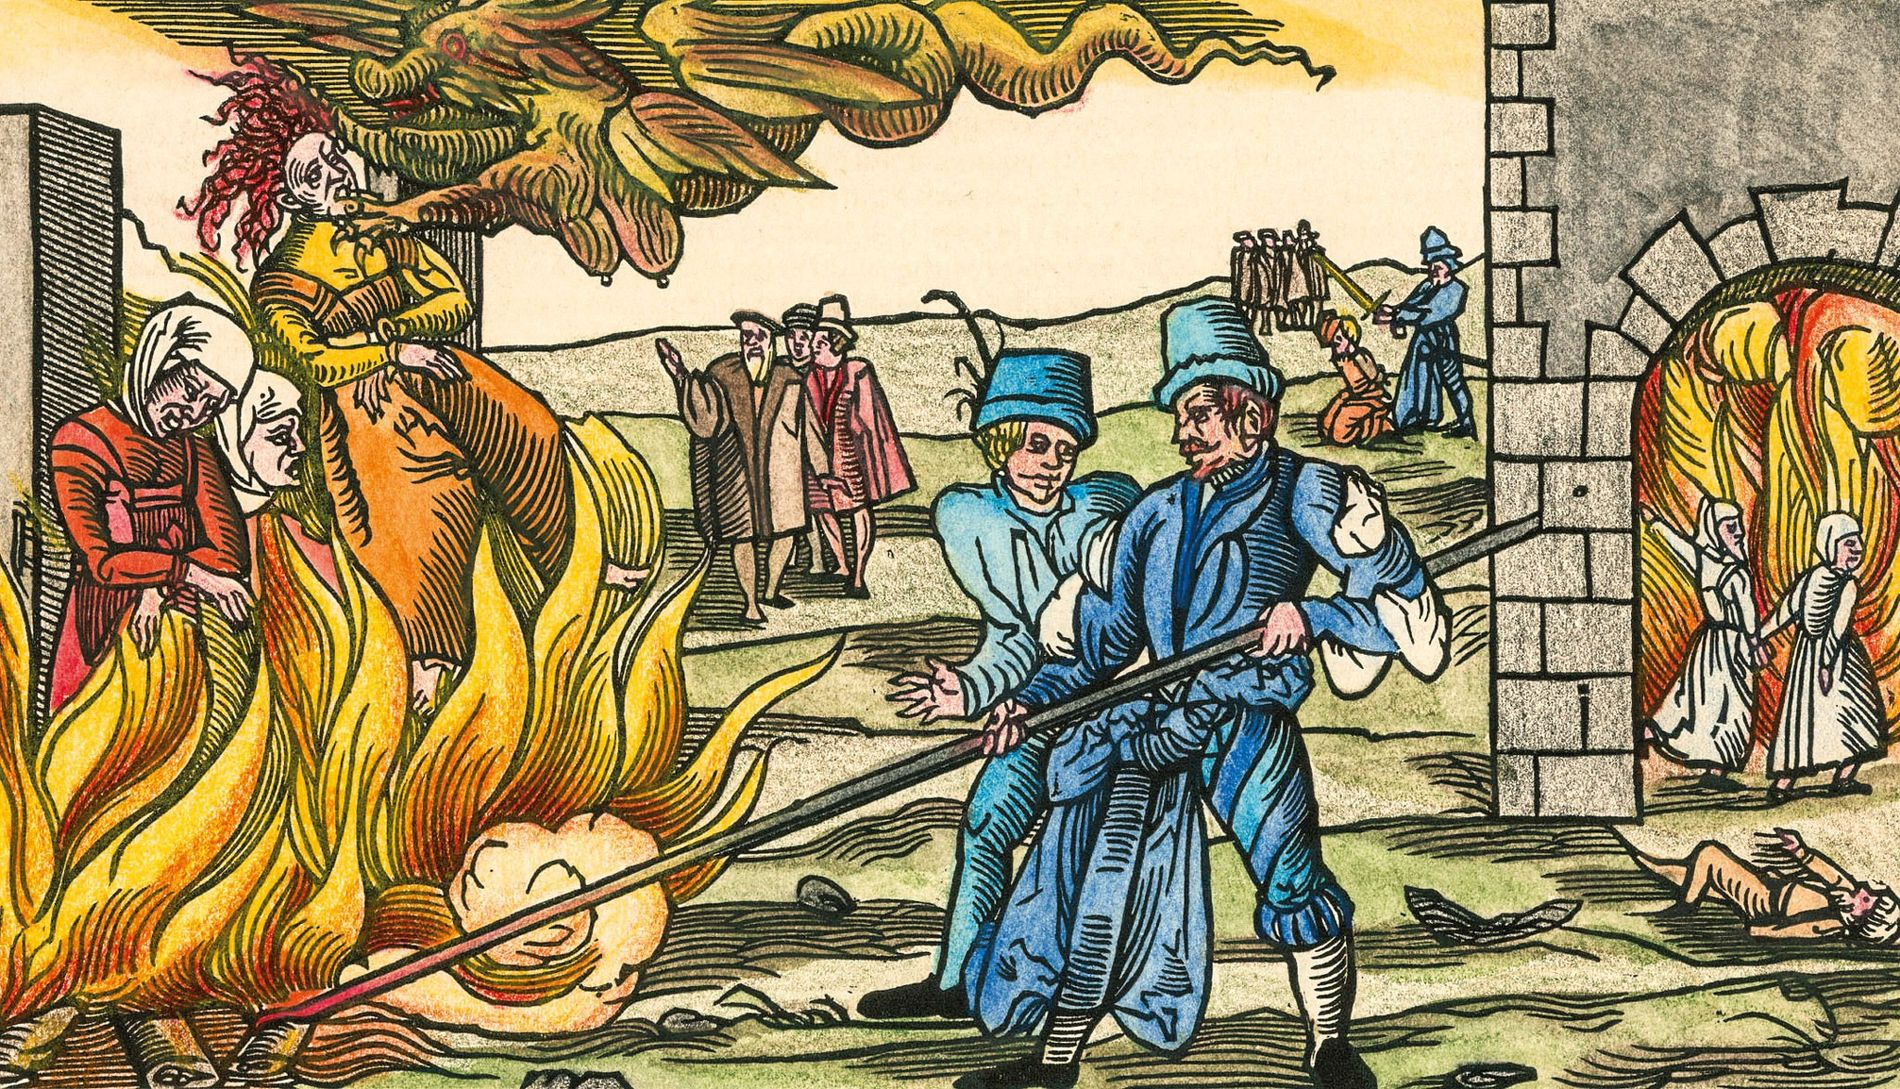 Burning witches alive was common in Germany and other parts of Europe, but in Scotland the convicted were usually strangled before their bodies were burned.